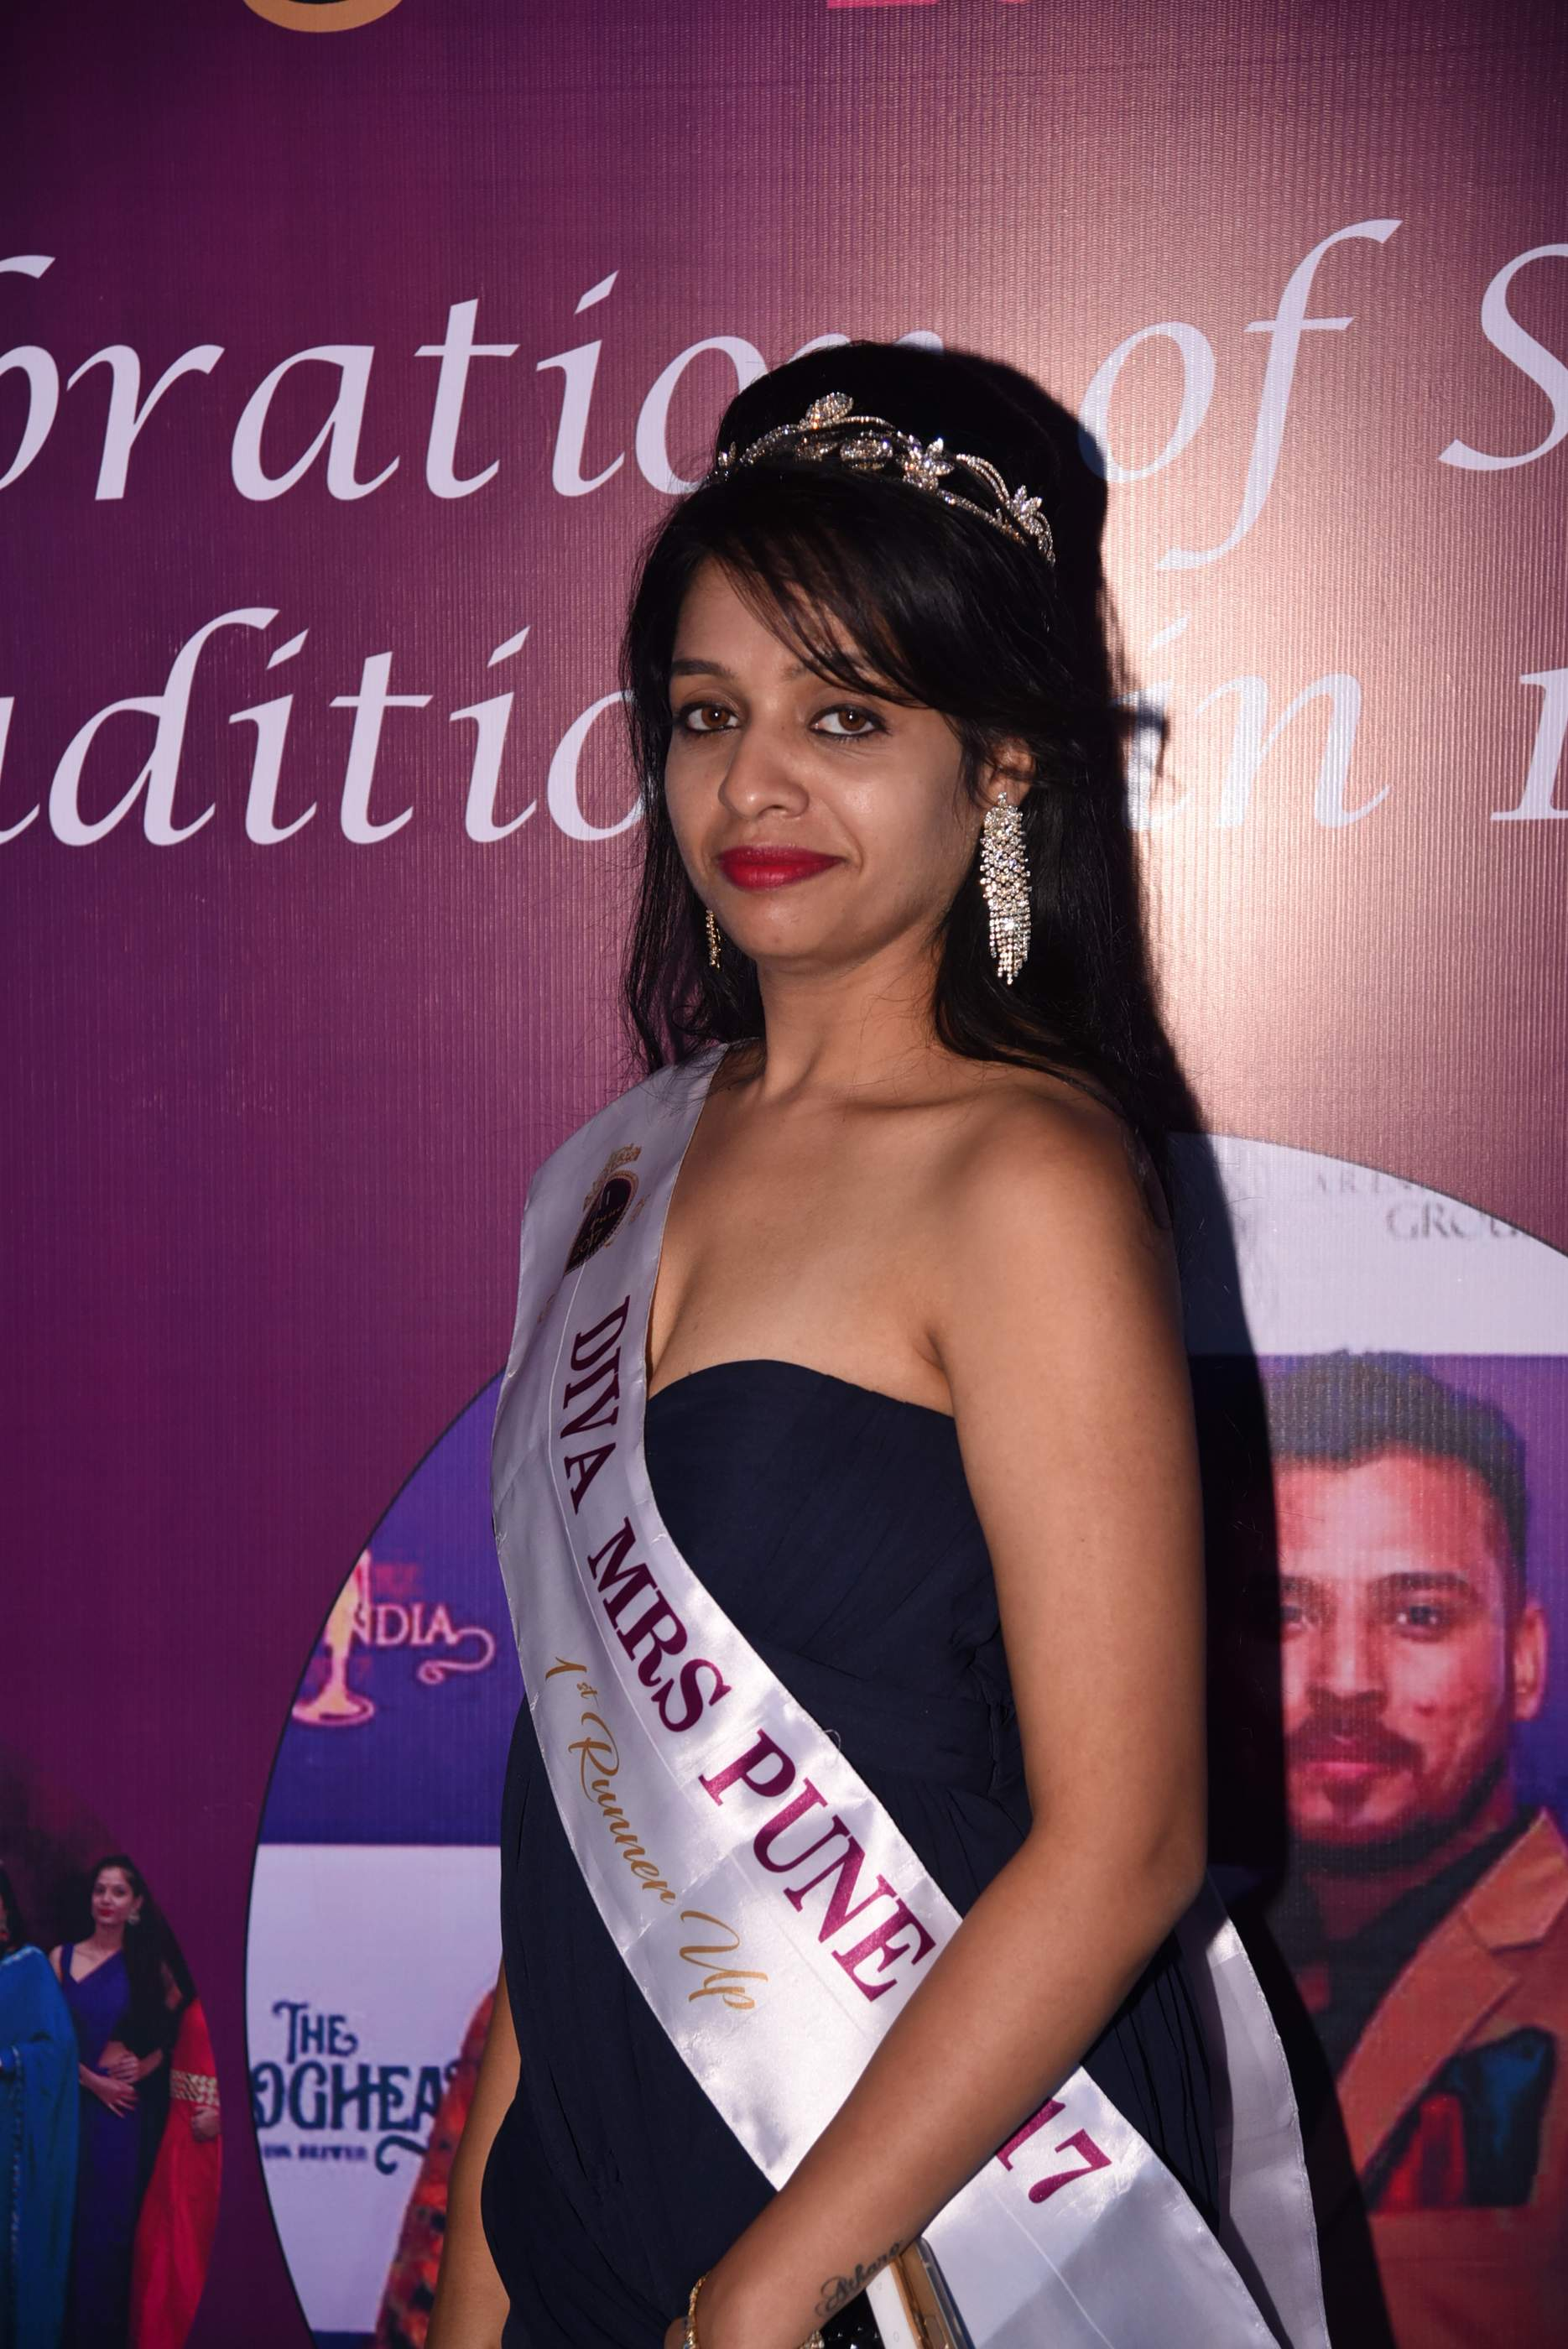 Photo Stills From ARCHERZ Mrs. INDIA 2017 Event